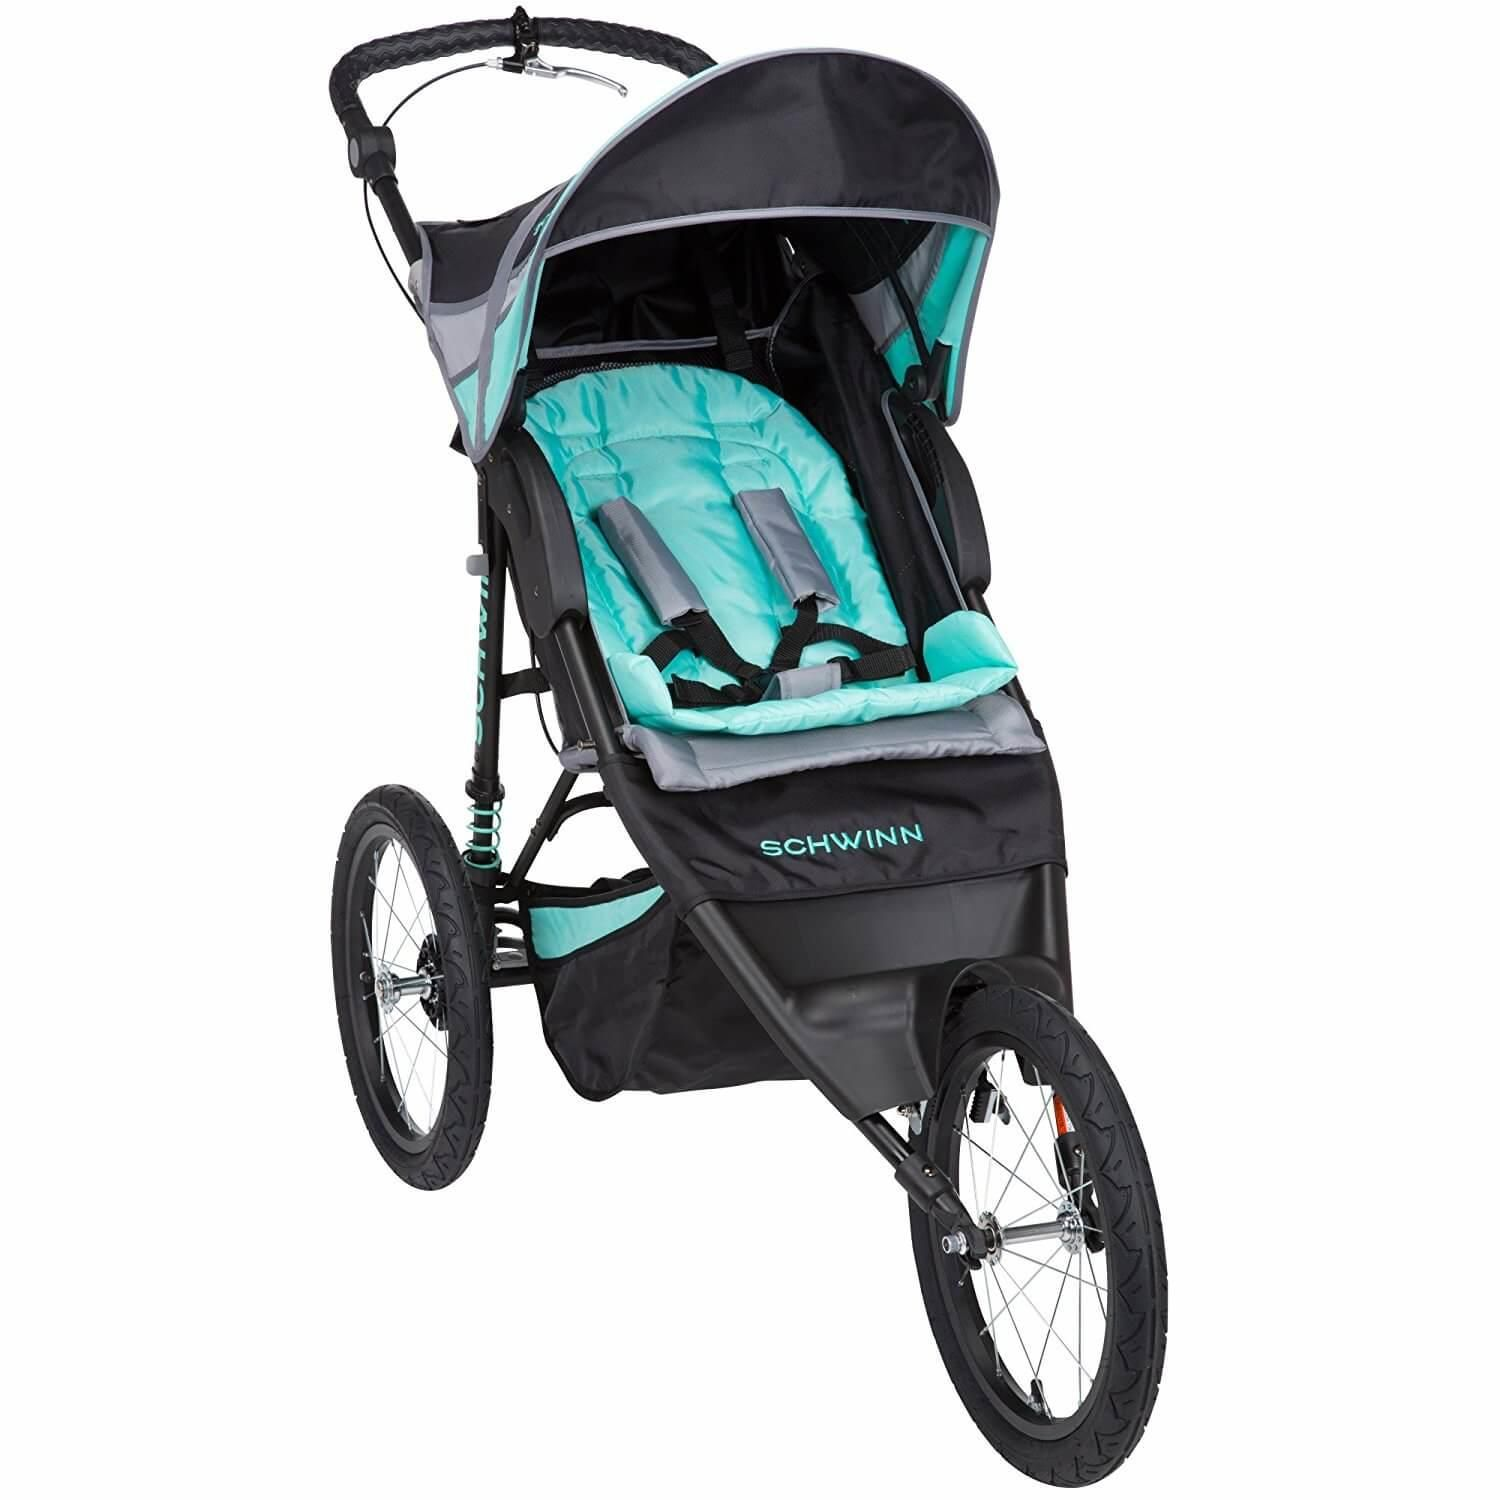 Best Jogging & Running Strollers Reviewed in 2019